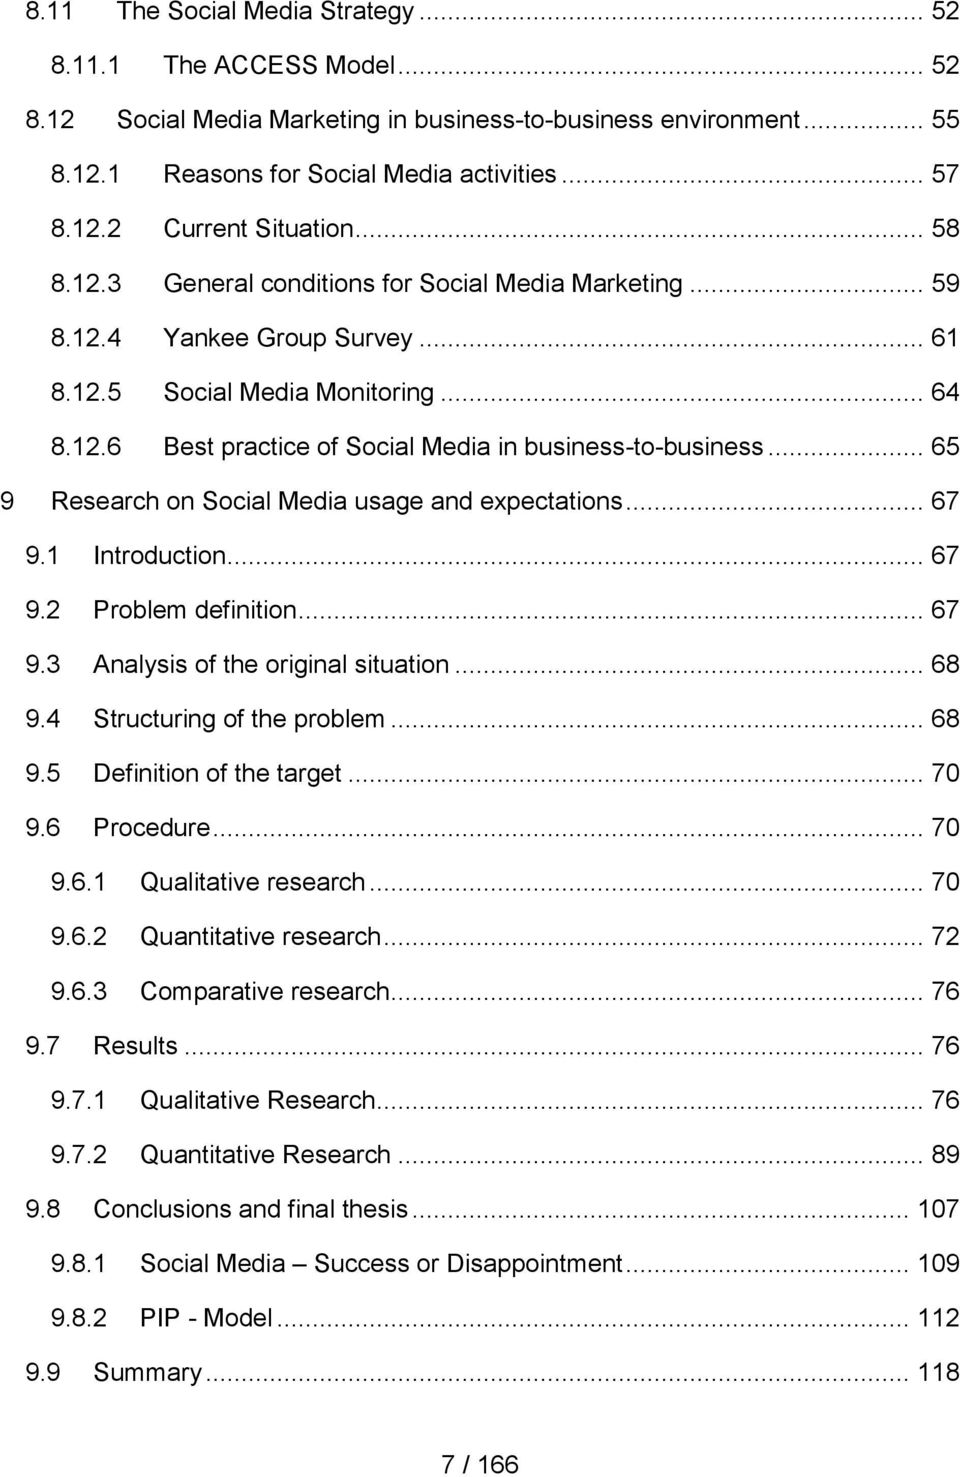 .. 65 9 Research on Social Media usage and expectations... 67 9.1 Introduction... 67 9.2 Problem definition... 67 9.3 Analysis of the original situation... 68 9.4 Structuring of the problem... 68 9.5 Definition of the target.